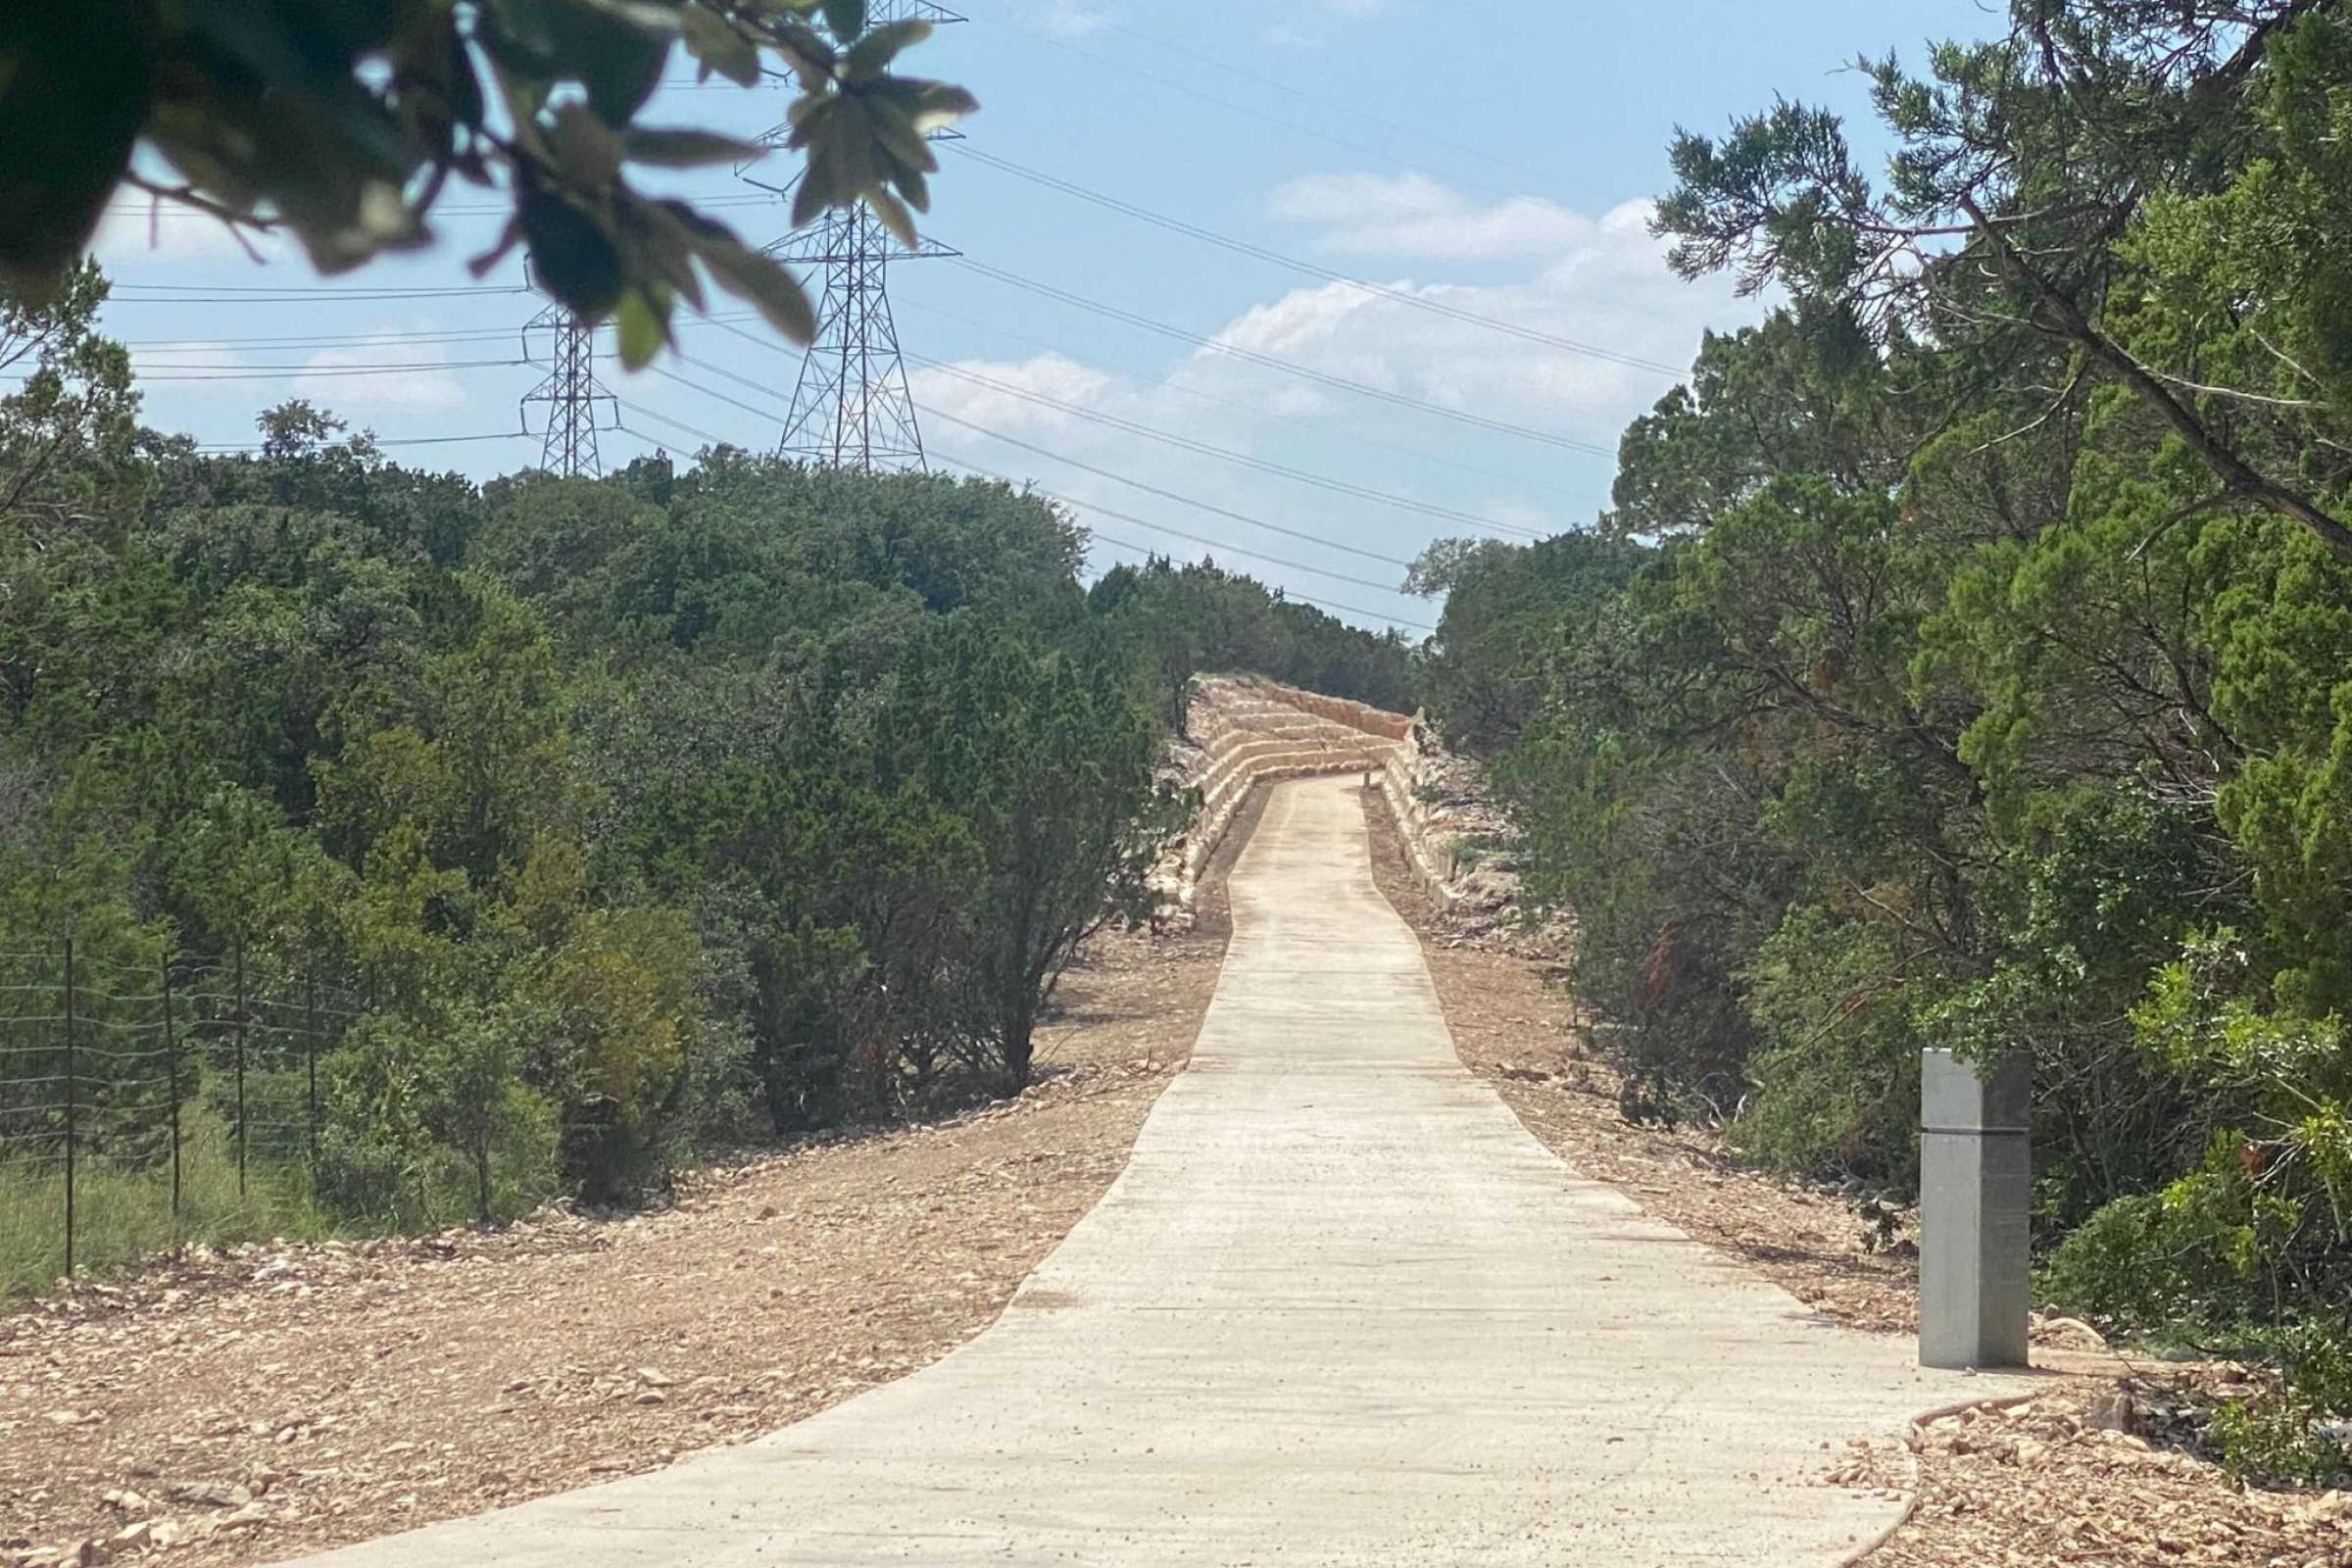 San Antonio's Newest Trail Connects Eisenhower Park To The Rim, And It's Opening Soon